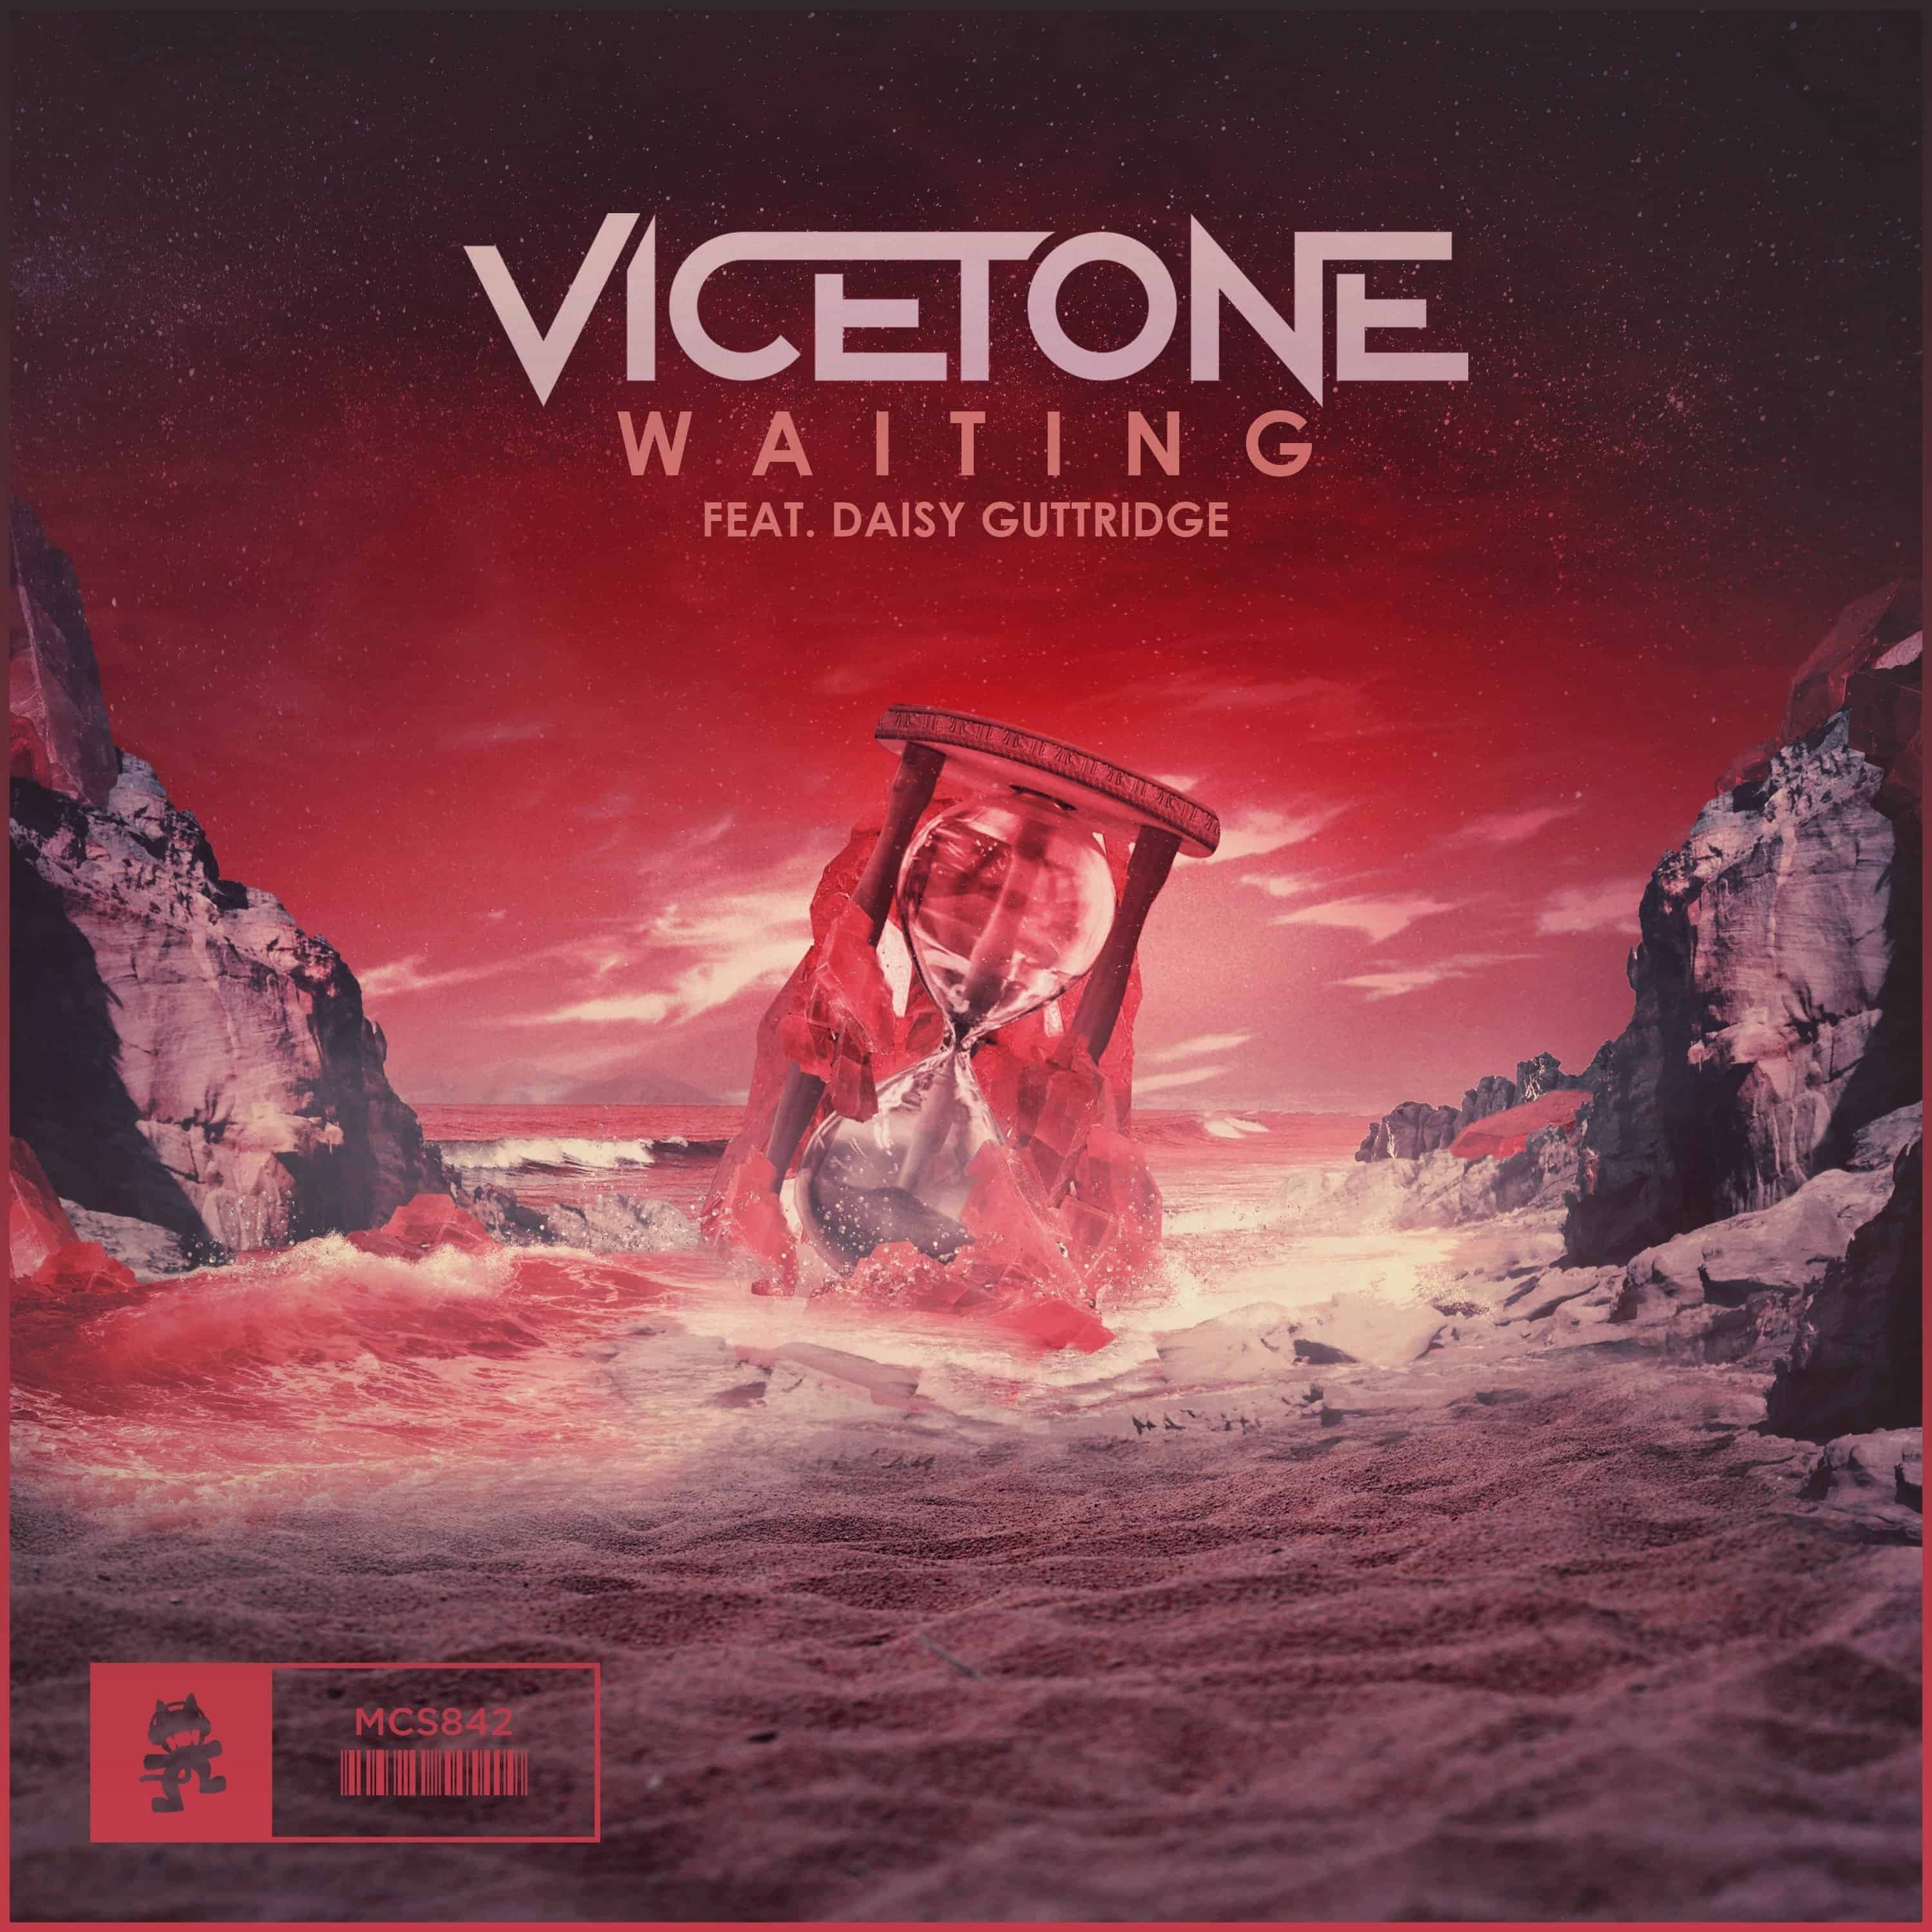 Vicetone Drops Single and Video for 'Waiting' Feat. Daisy Guttridge